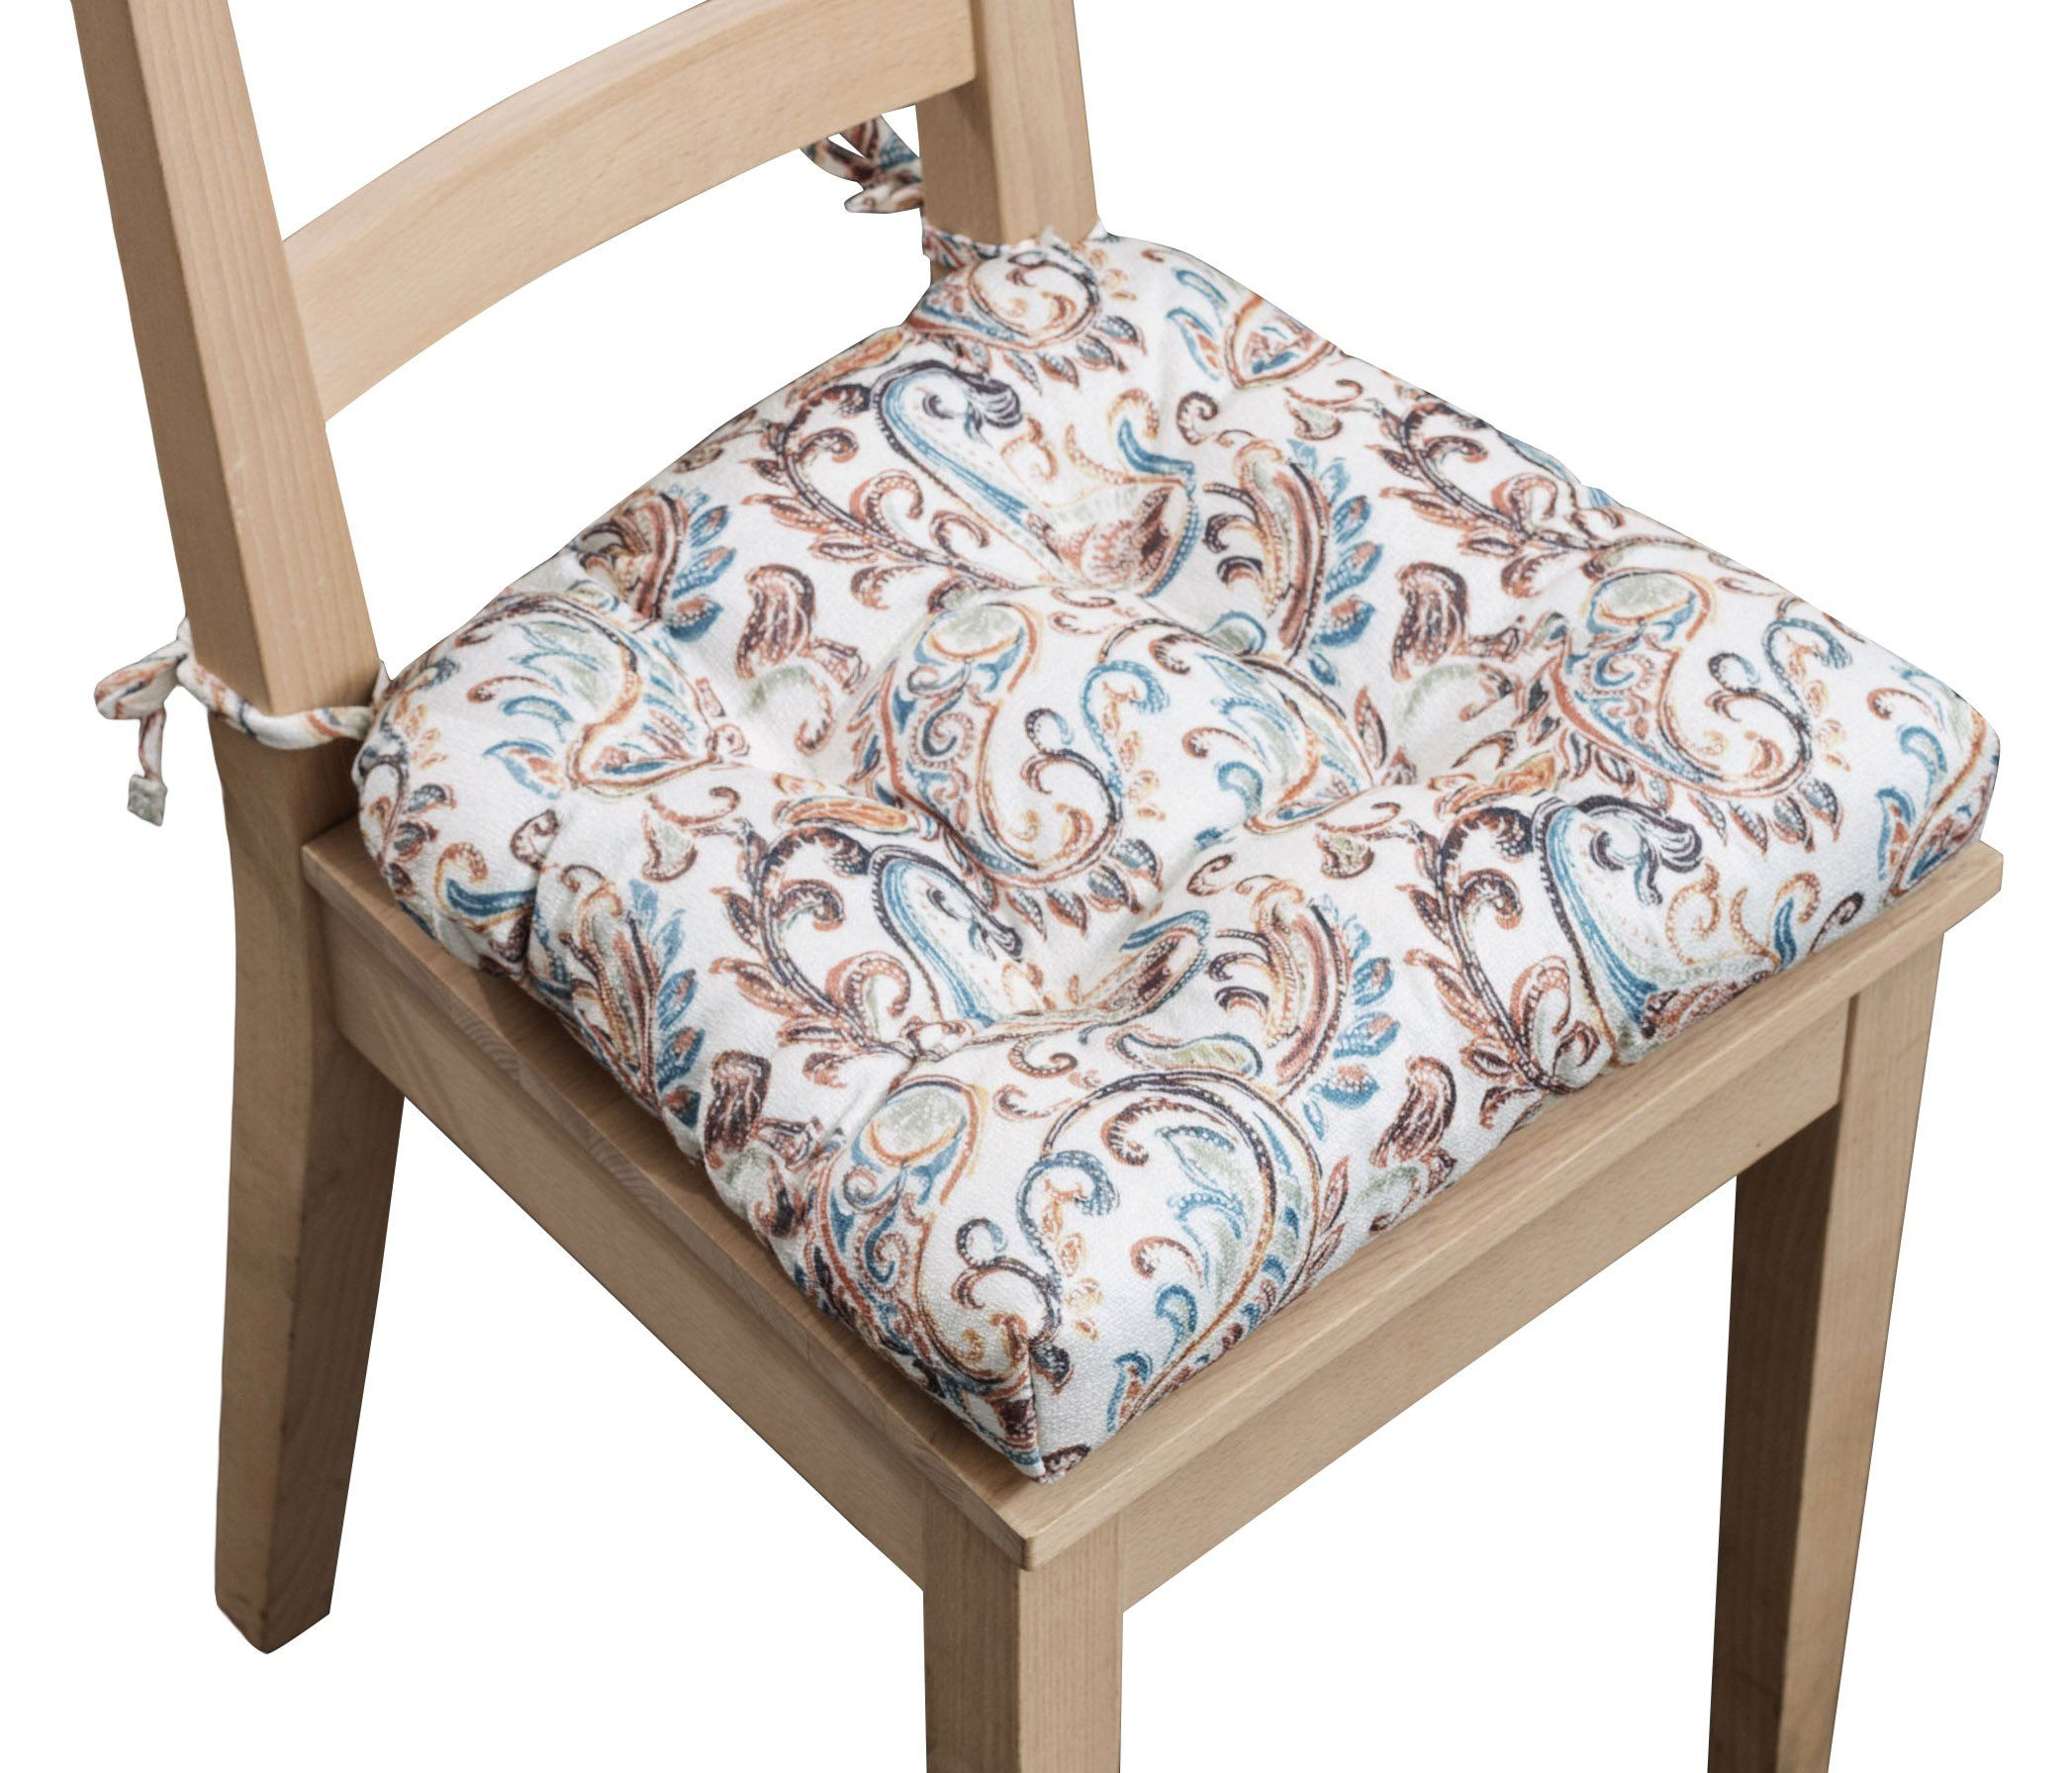 Memory Foam Chair Pads With Ties Off 56, Memory Foam For Dining Room Chairs